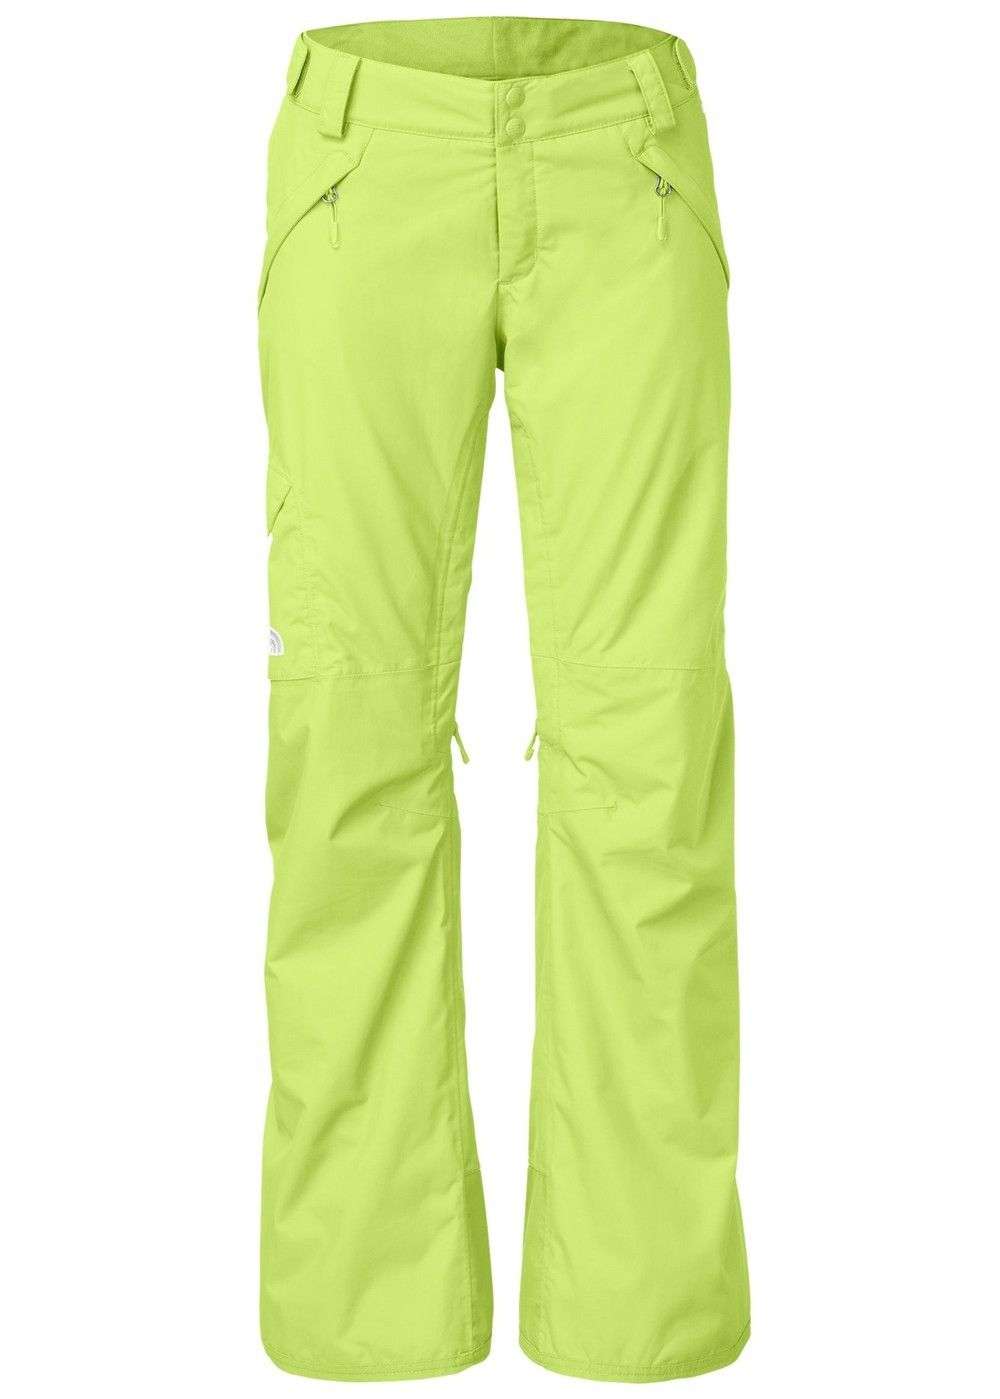 Got Em Ski Pants Women North Face Women Pants